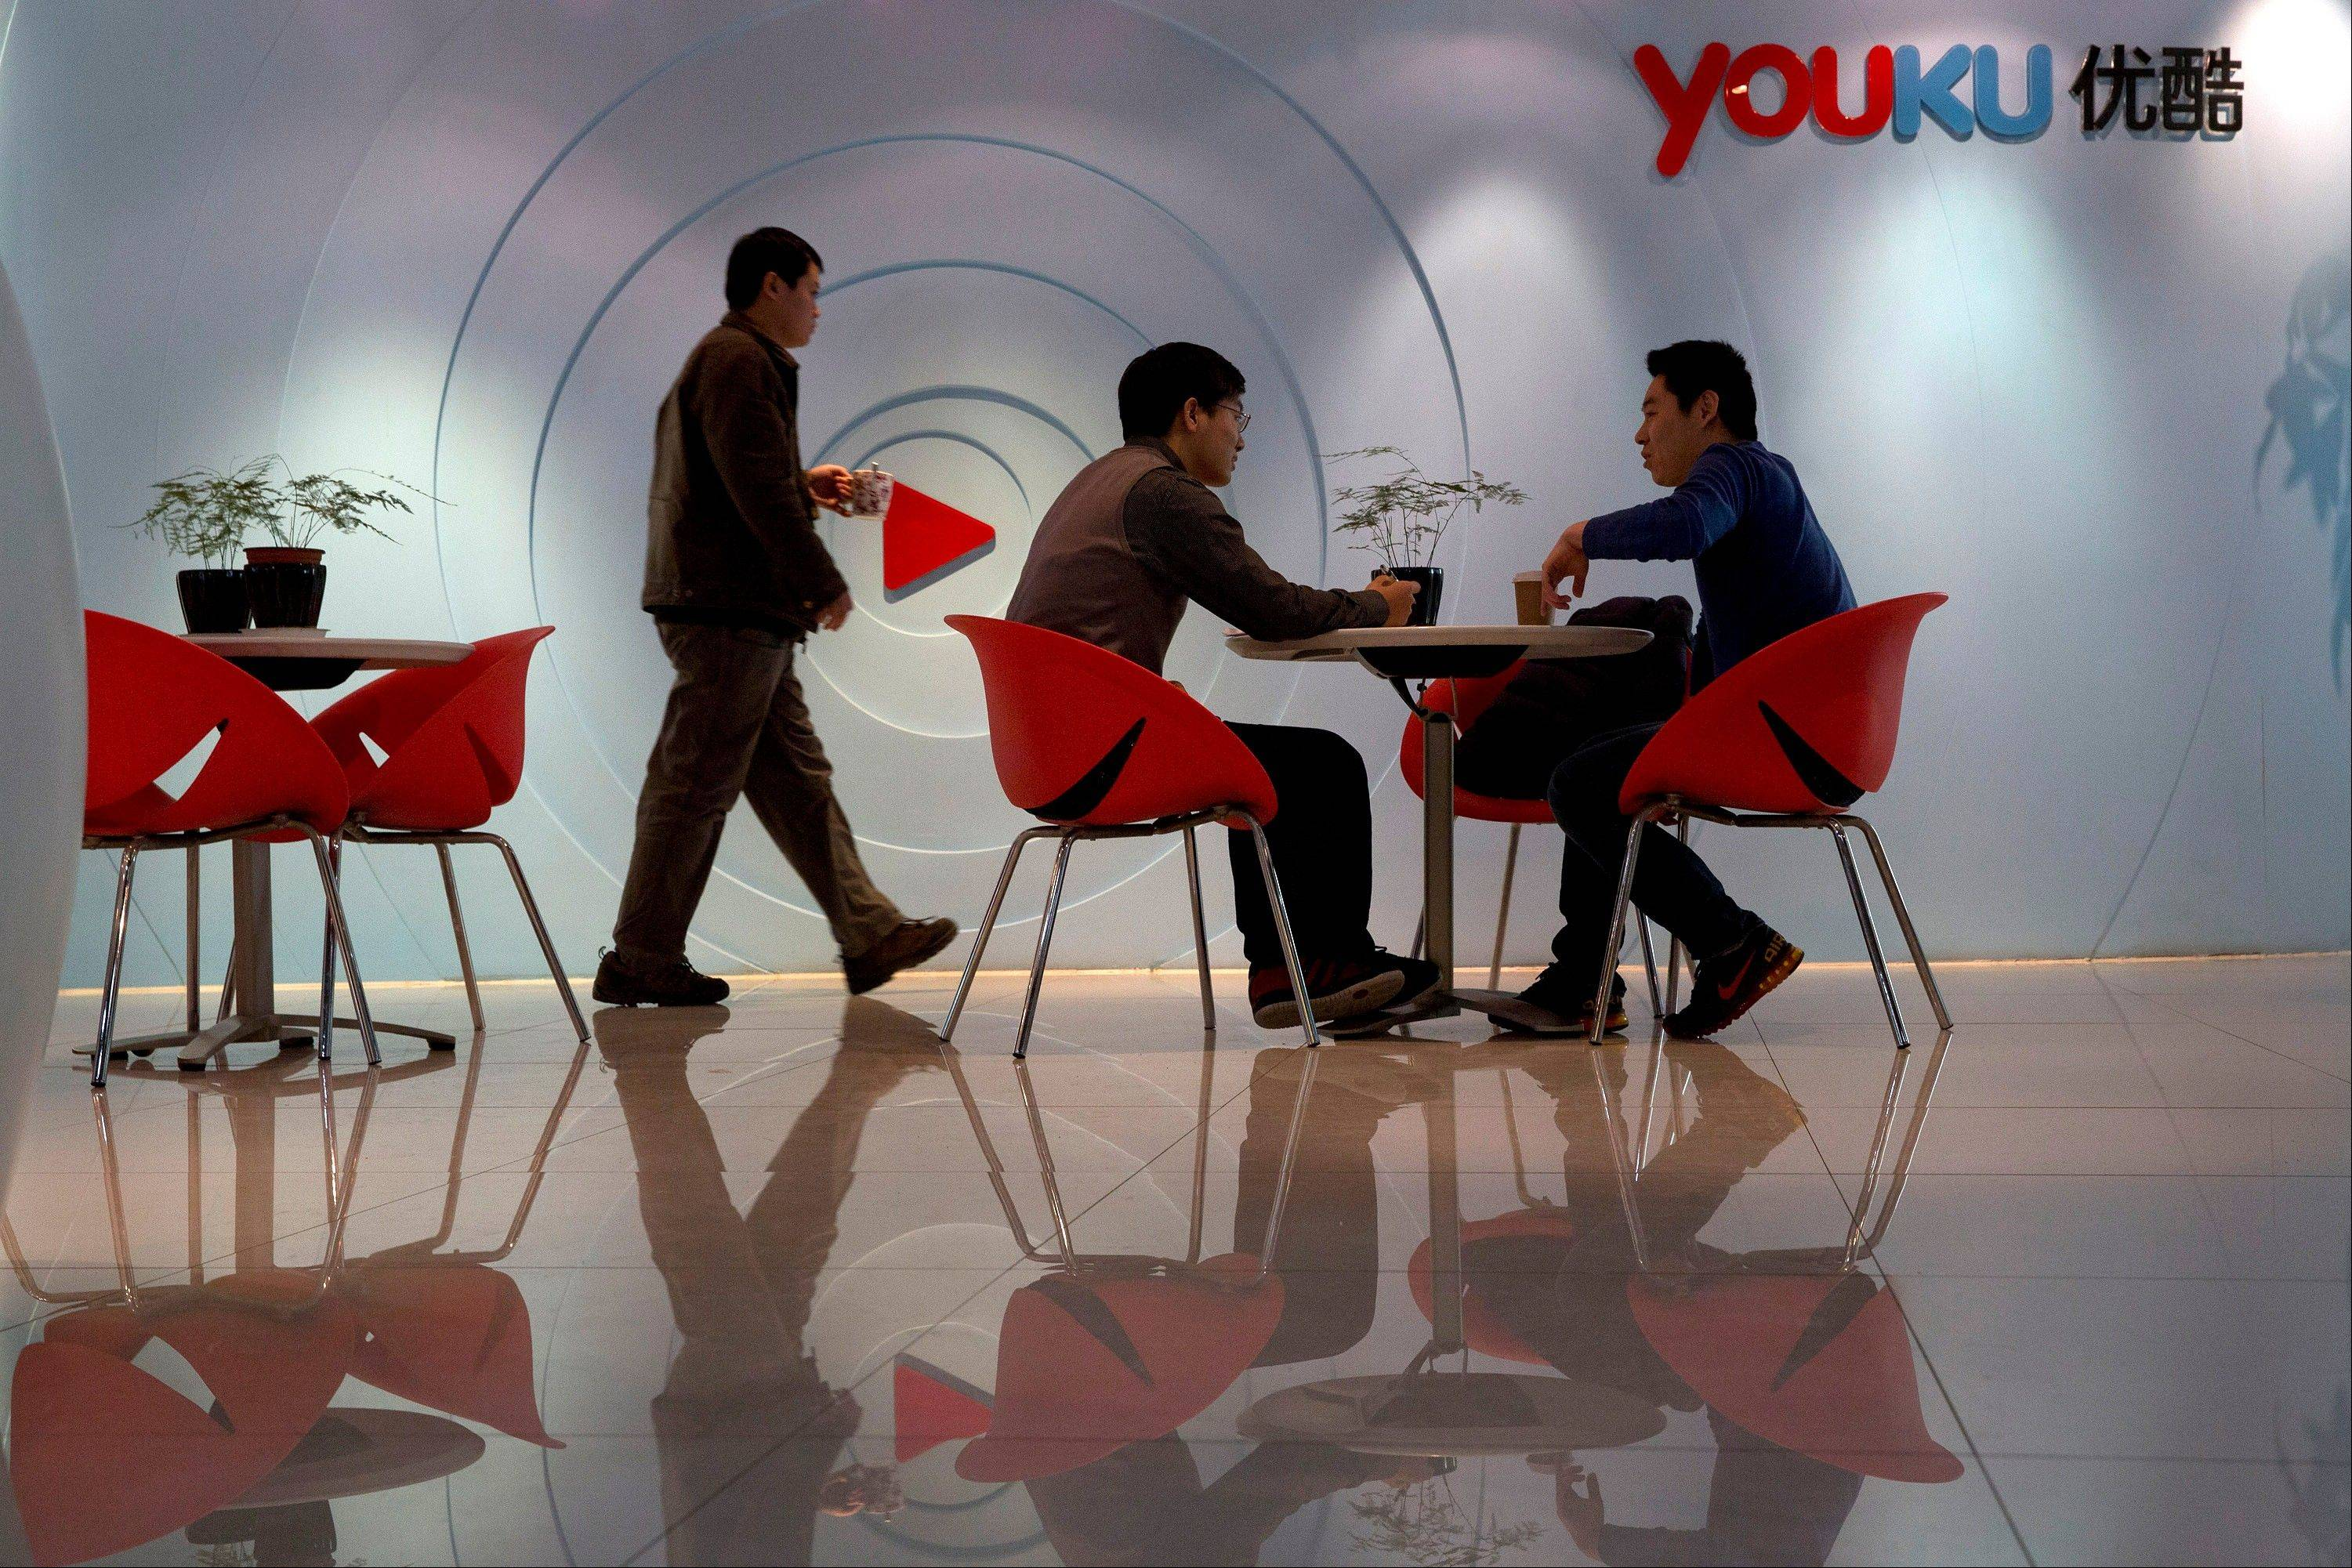 People meet at a lounge of the Youku headquarters in Beijing, China. In China, pirate DVDs in stores and on the street were traditionally the fastest way to get access to a film, and cheaper than going to the theater. A few years ago, piracy also dominated online. Today, China�s major video streaming sites have deals with Hollywood studios and others and are filled with licensed content.